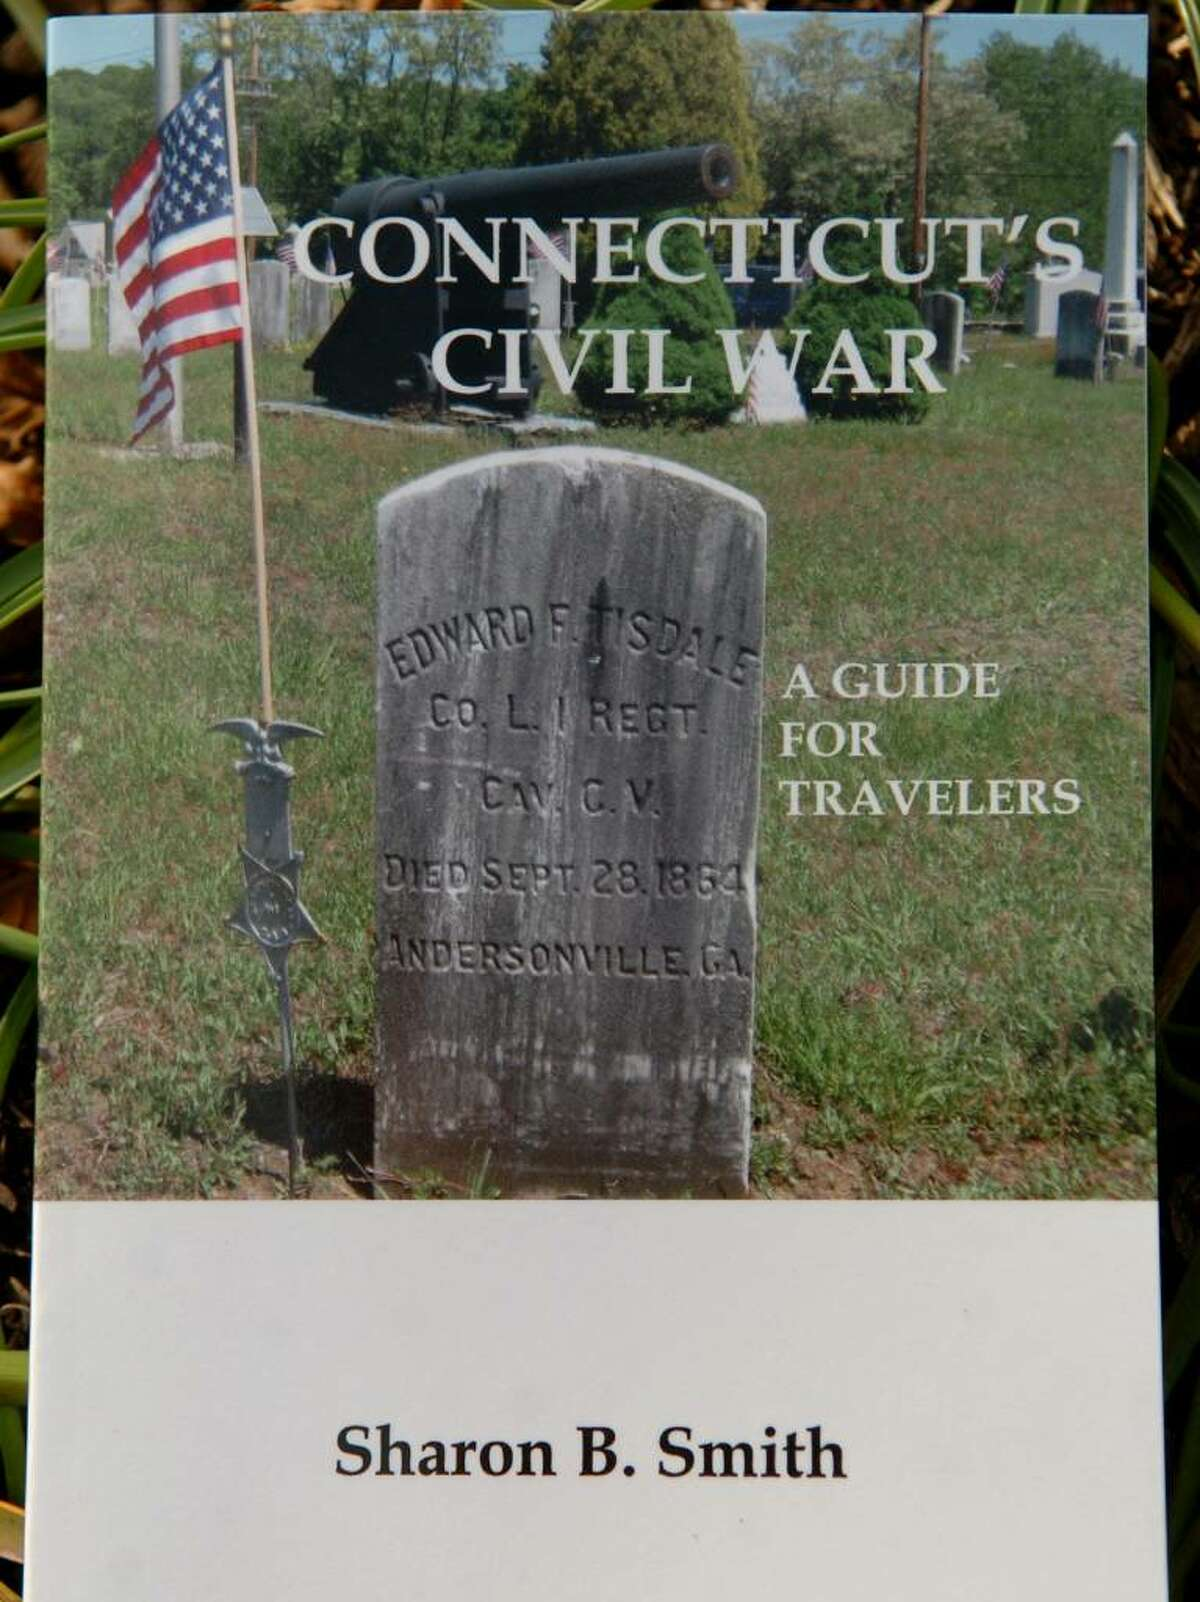 Connecticut's Civil War: A Guide for Travelers, the new book by Sharon B. Smith of Milford.